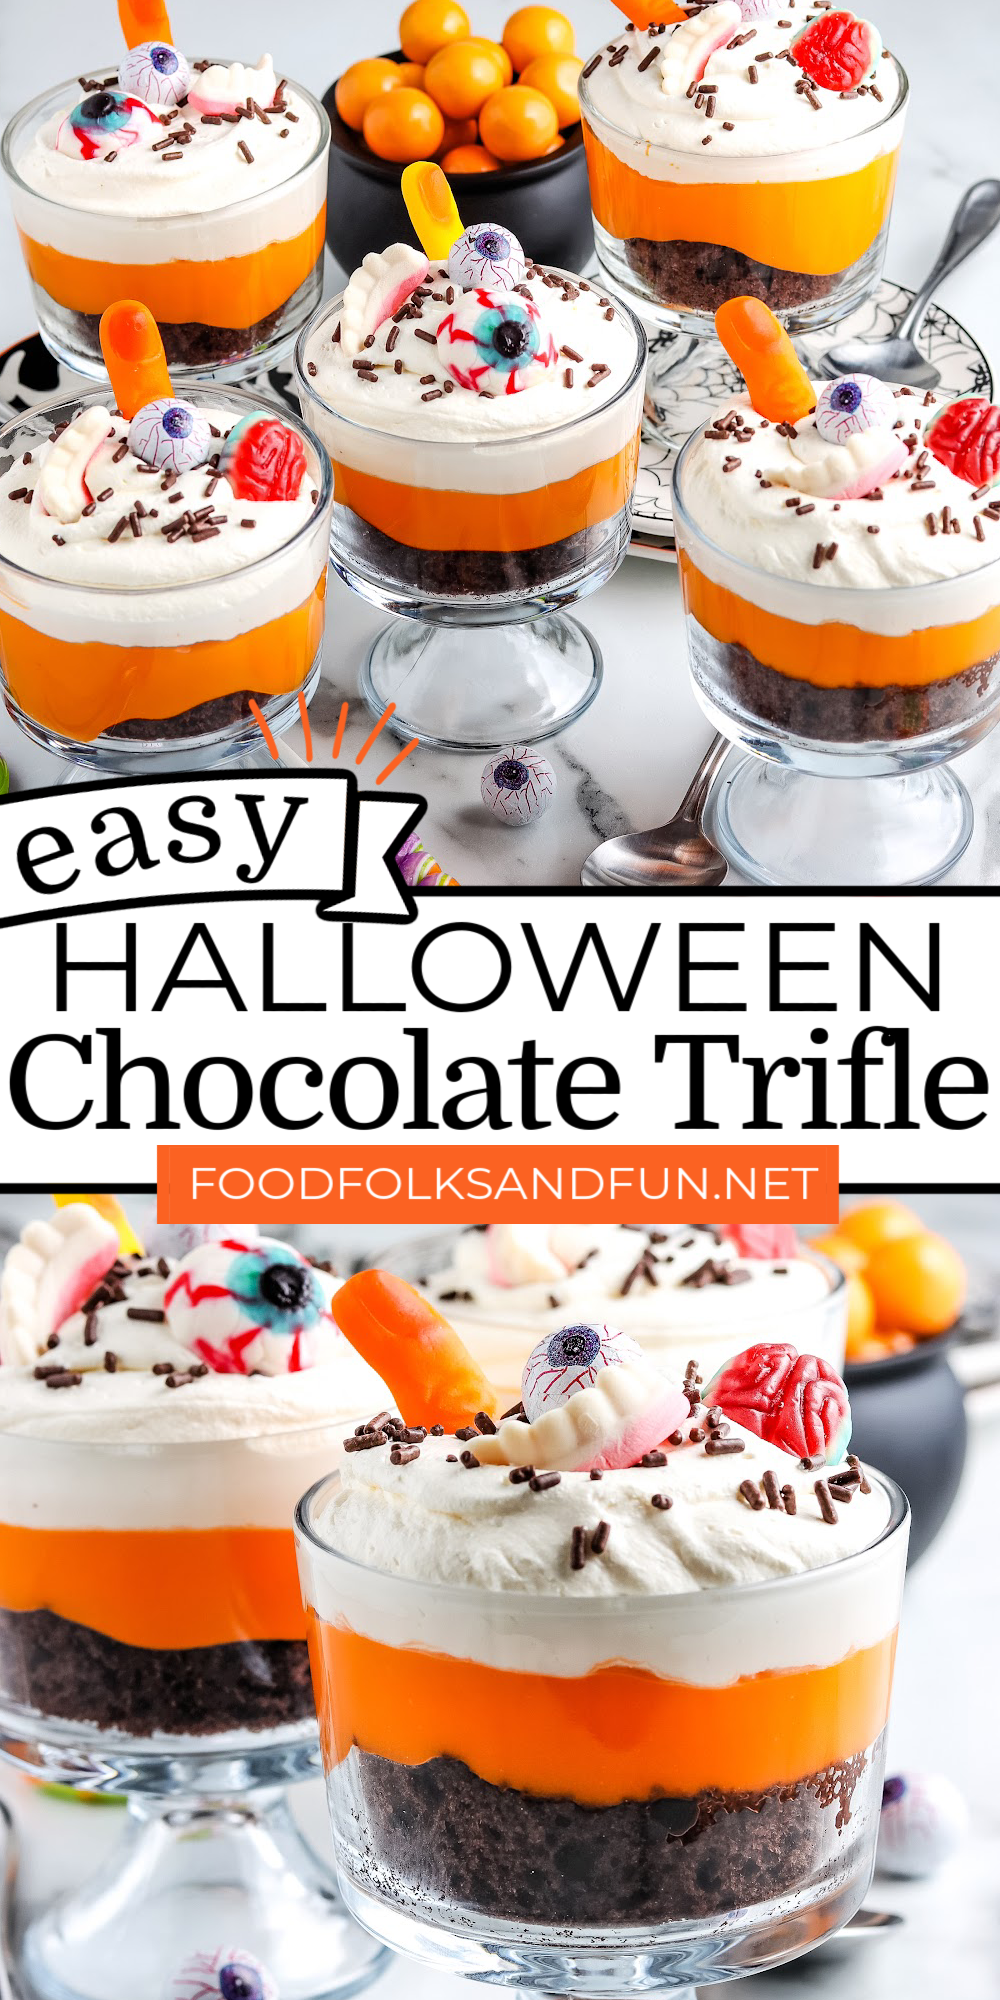 This Easy Halloween Chocolate Trifle recipe is made from cake mix chocolate cake, instant vanilla pudding, Cool Whip, and assorted Halloween Candies. Grab the kiddos because they'll love making this recipe with you! via @foodfolksandfun